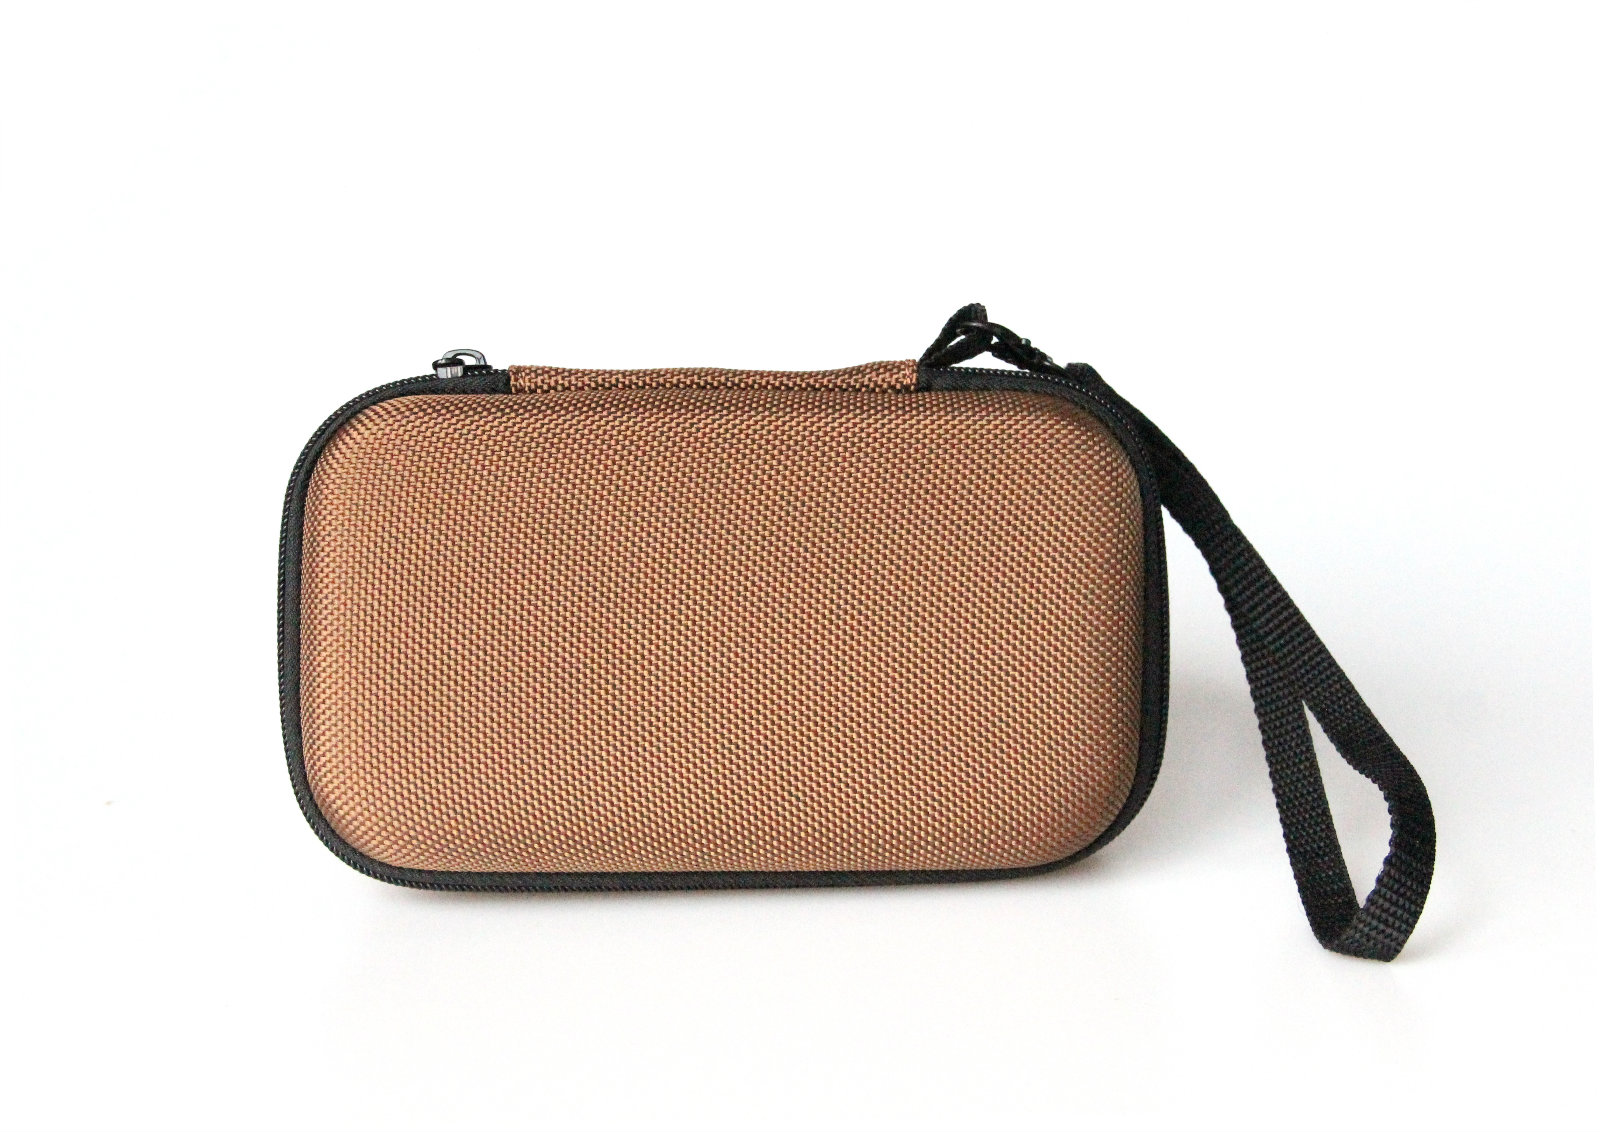 Custom waterproof hard carrying case for 5-inch gps